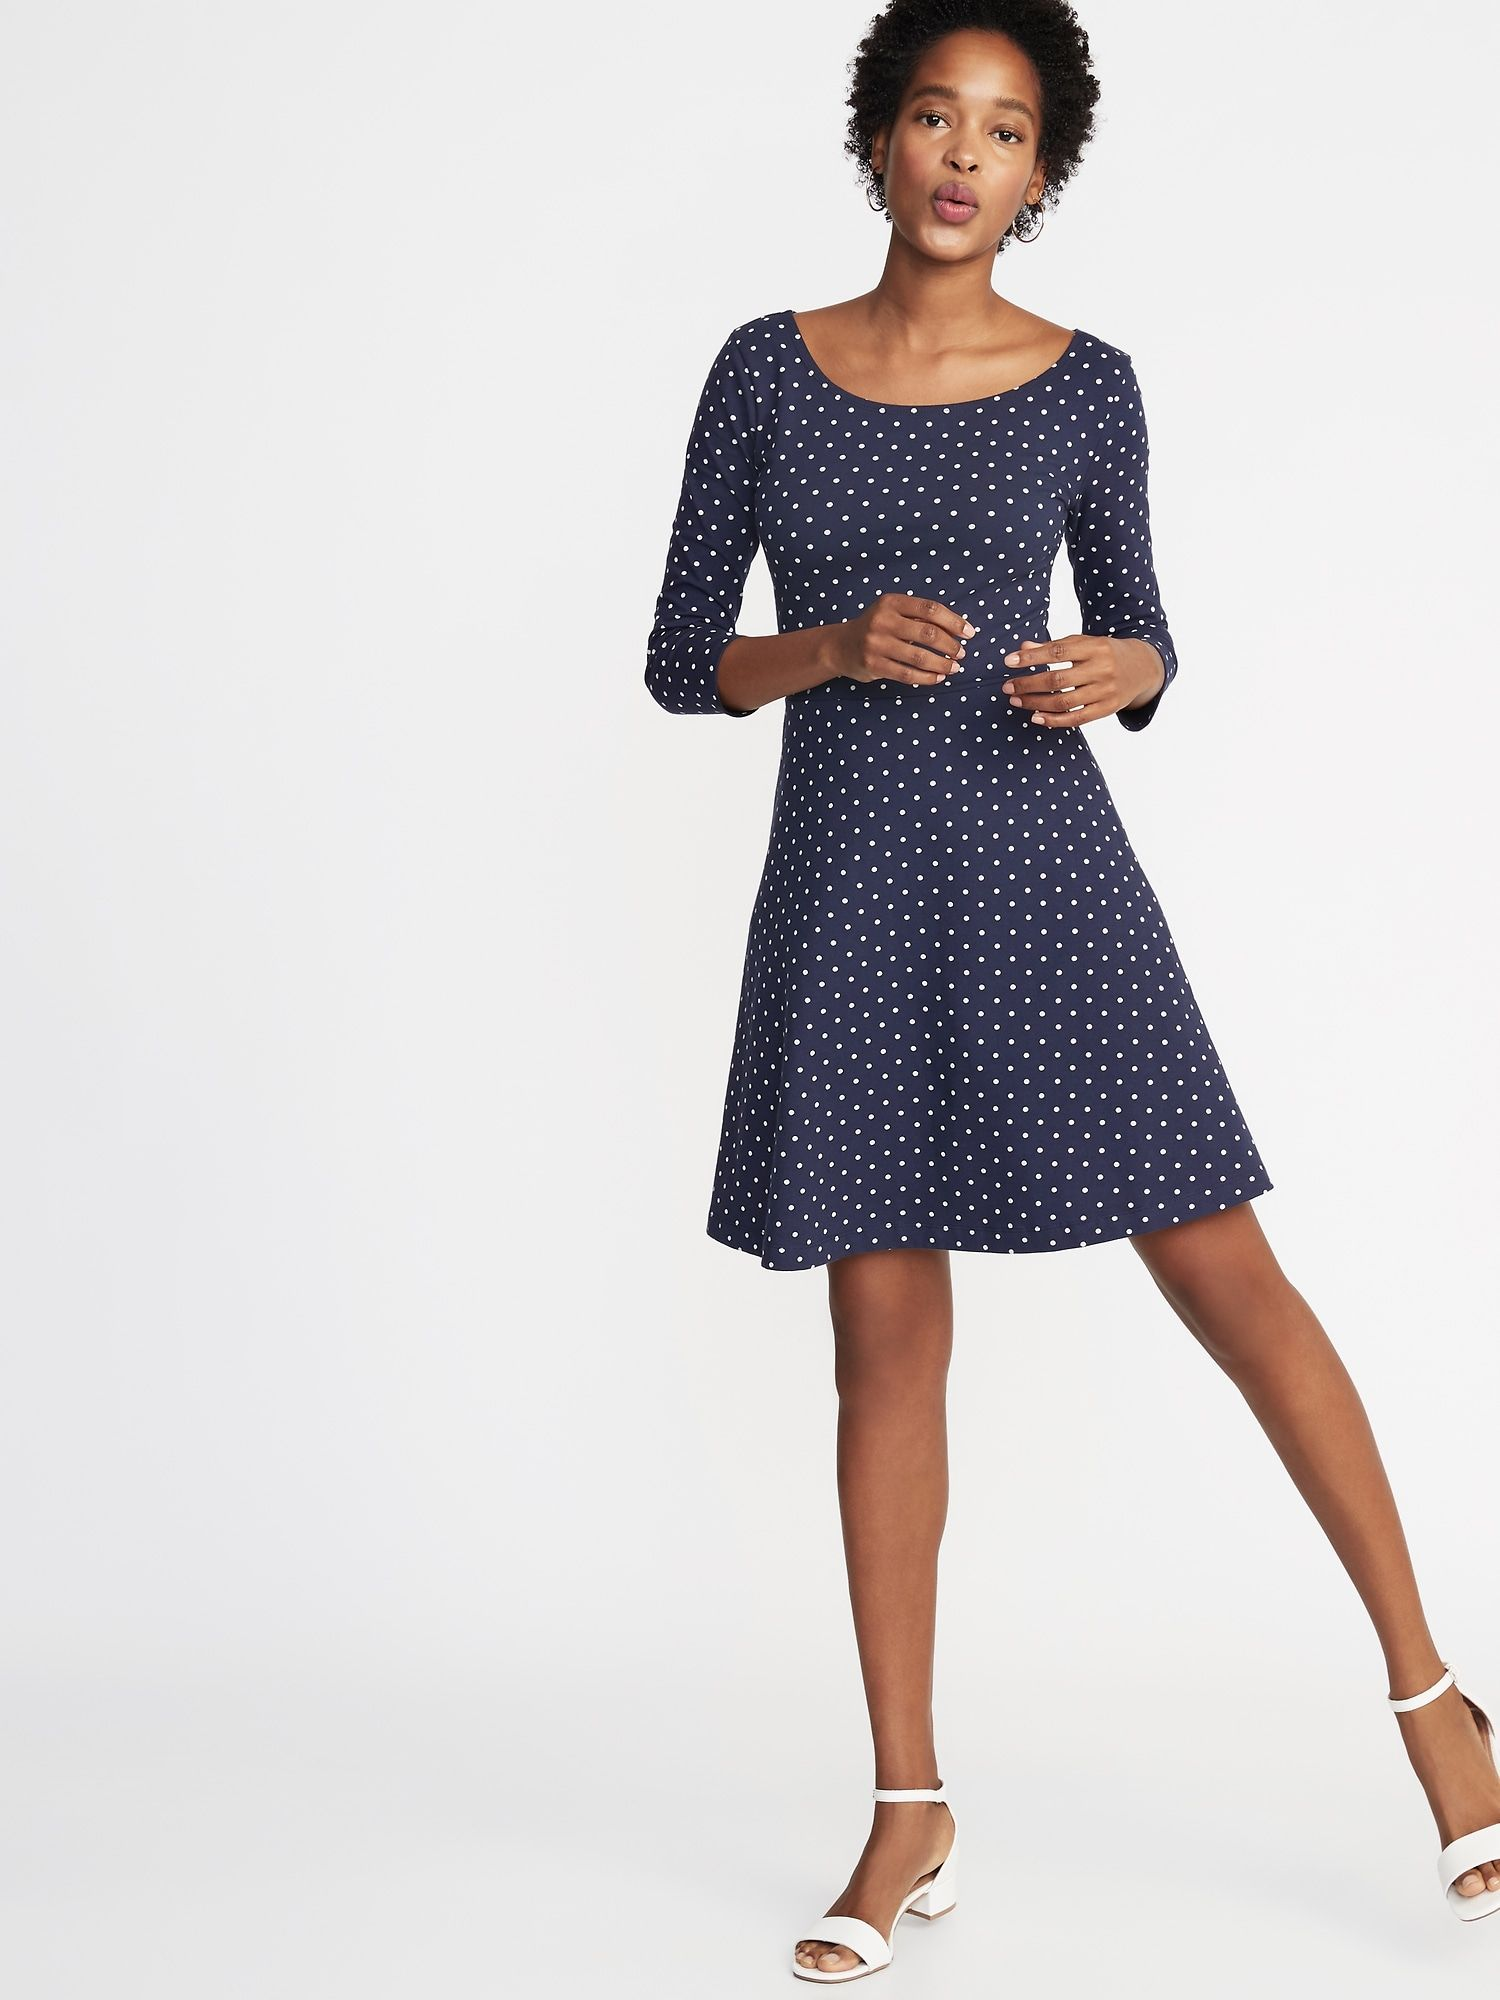 Fit Flare 3 4 Sleeve Jersey Dress For Women Old Navy Fit Flare Dress Jersey Dress Hot Dress